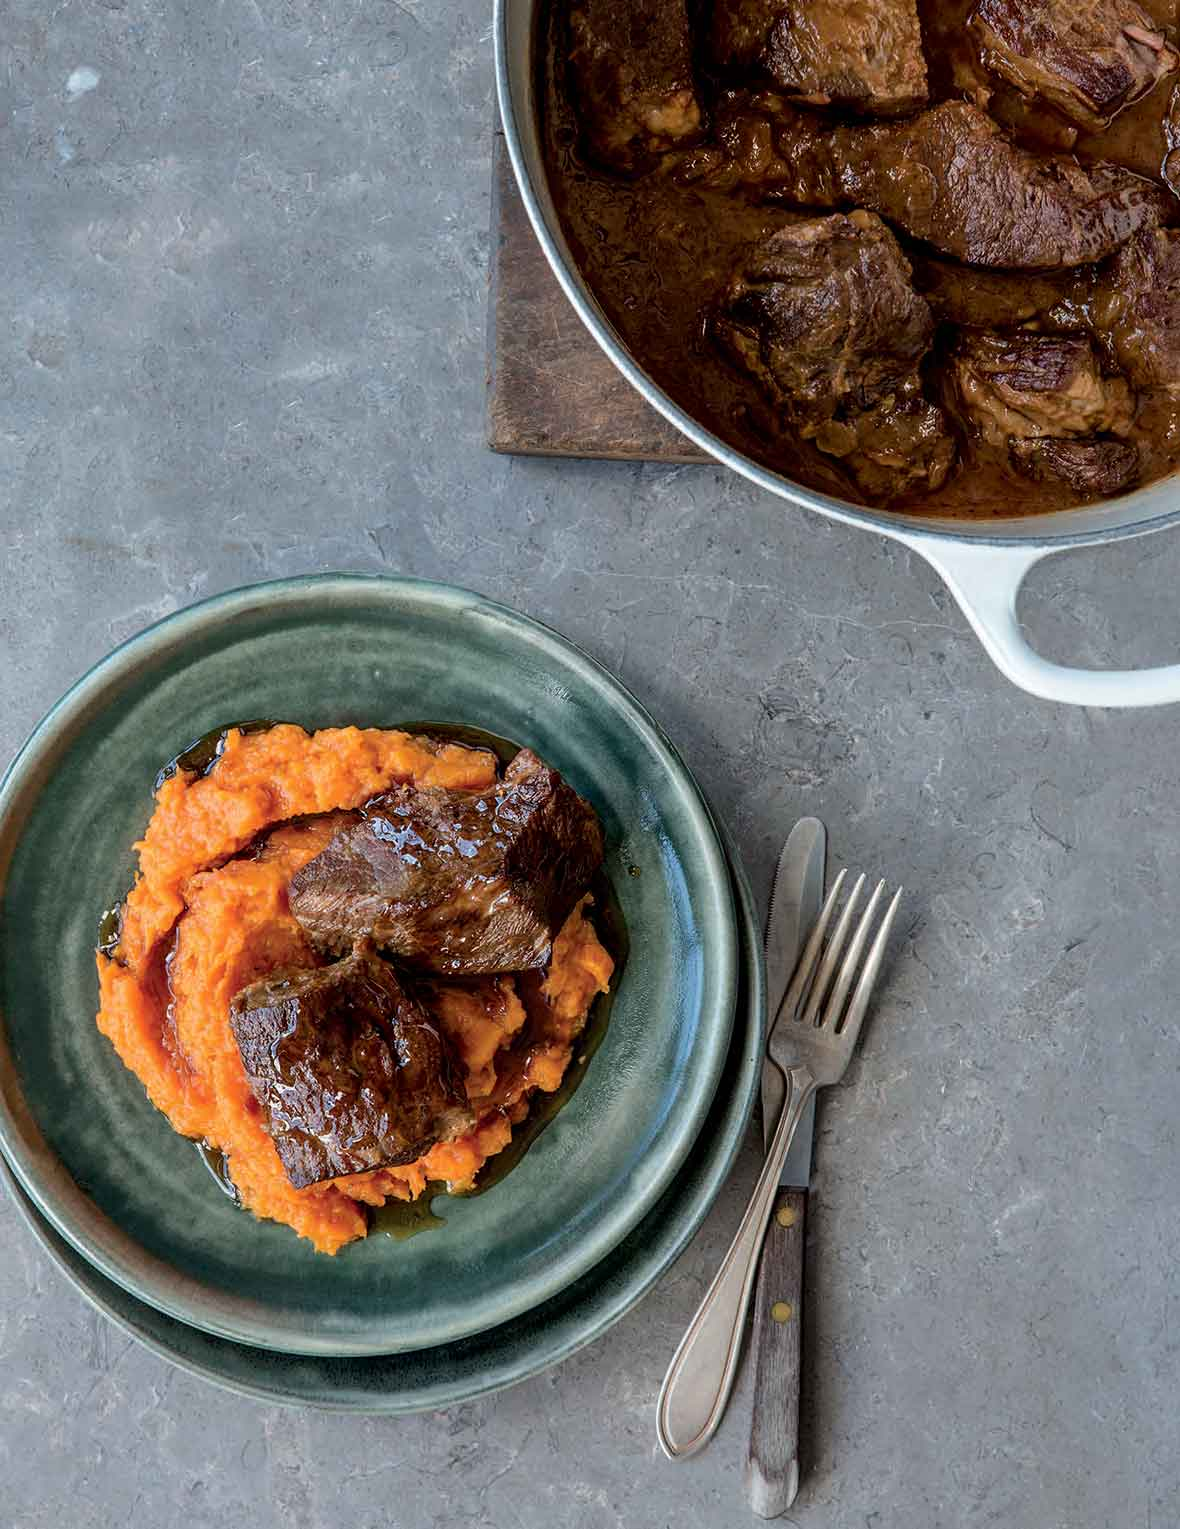 A green plate containing sweet potato puree, topped with 2 pieces of short rib. A Dutch oven is beside the bowl with more short ribs.